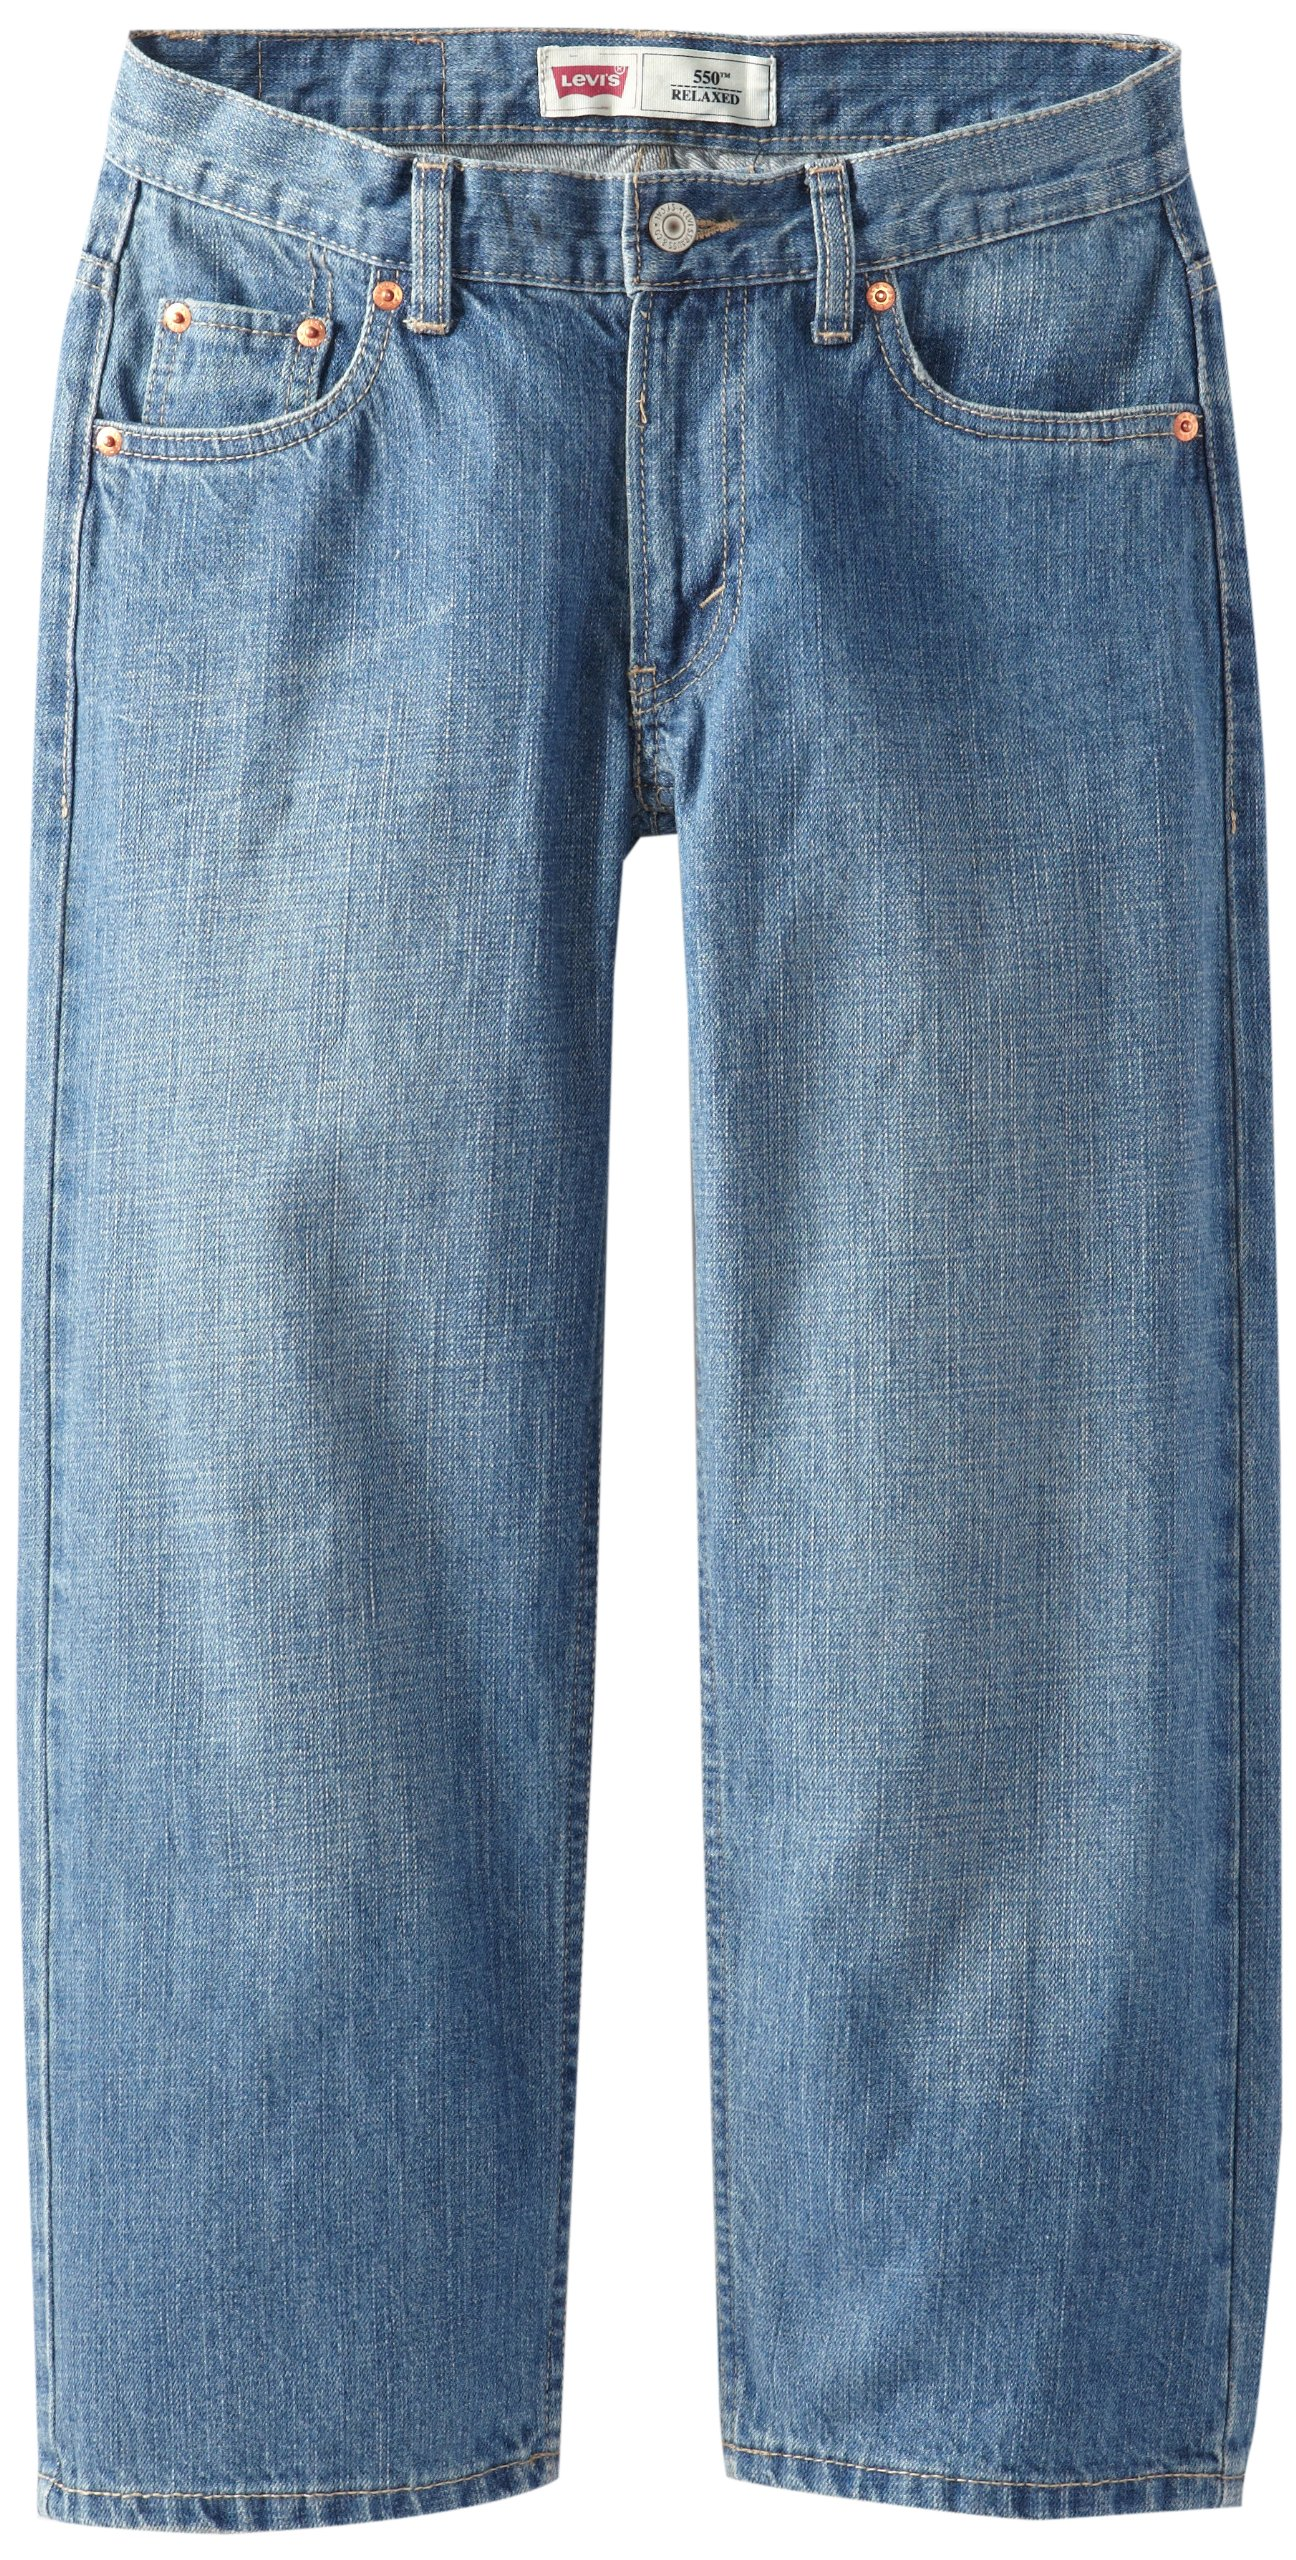 Levi's Boys' Big 550 Relaxed Fit Jeans, Catapult, 18 Husky by Levi's